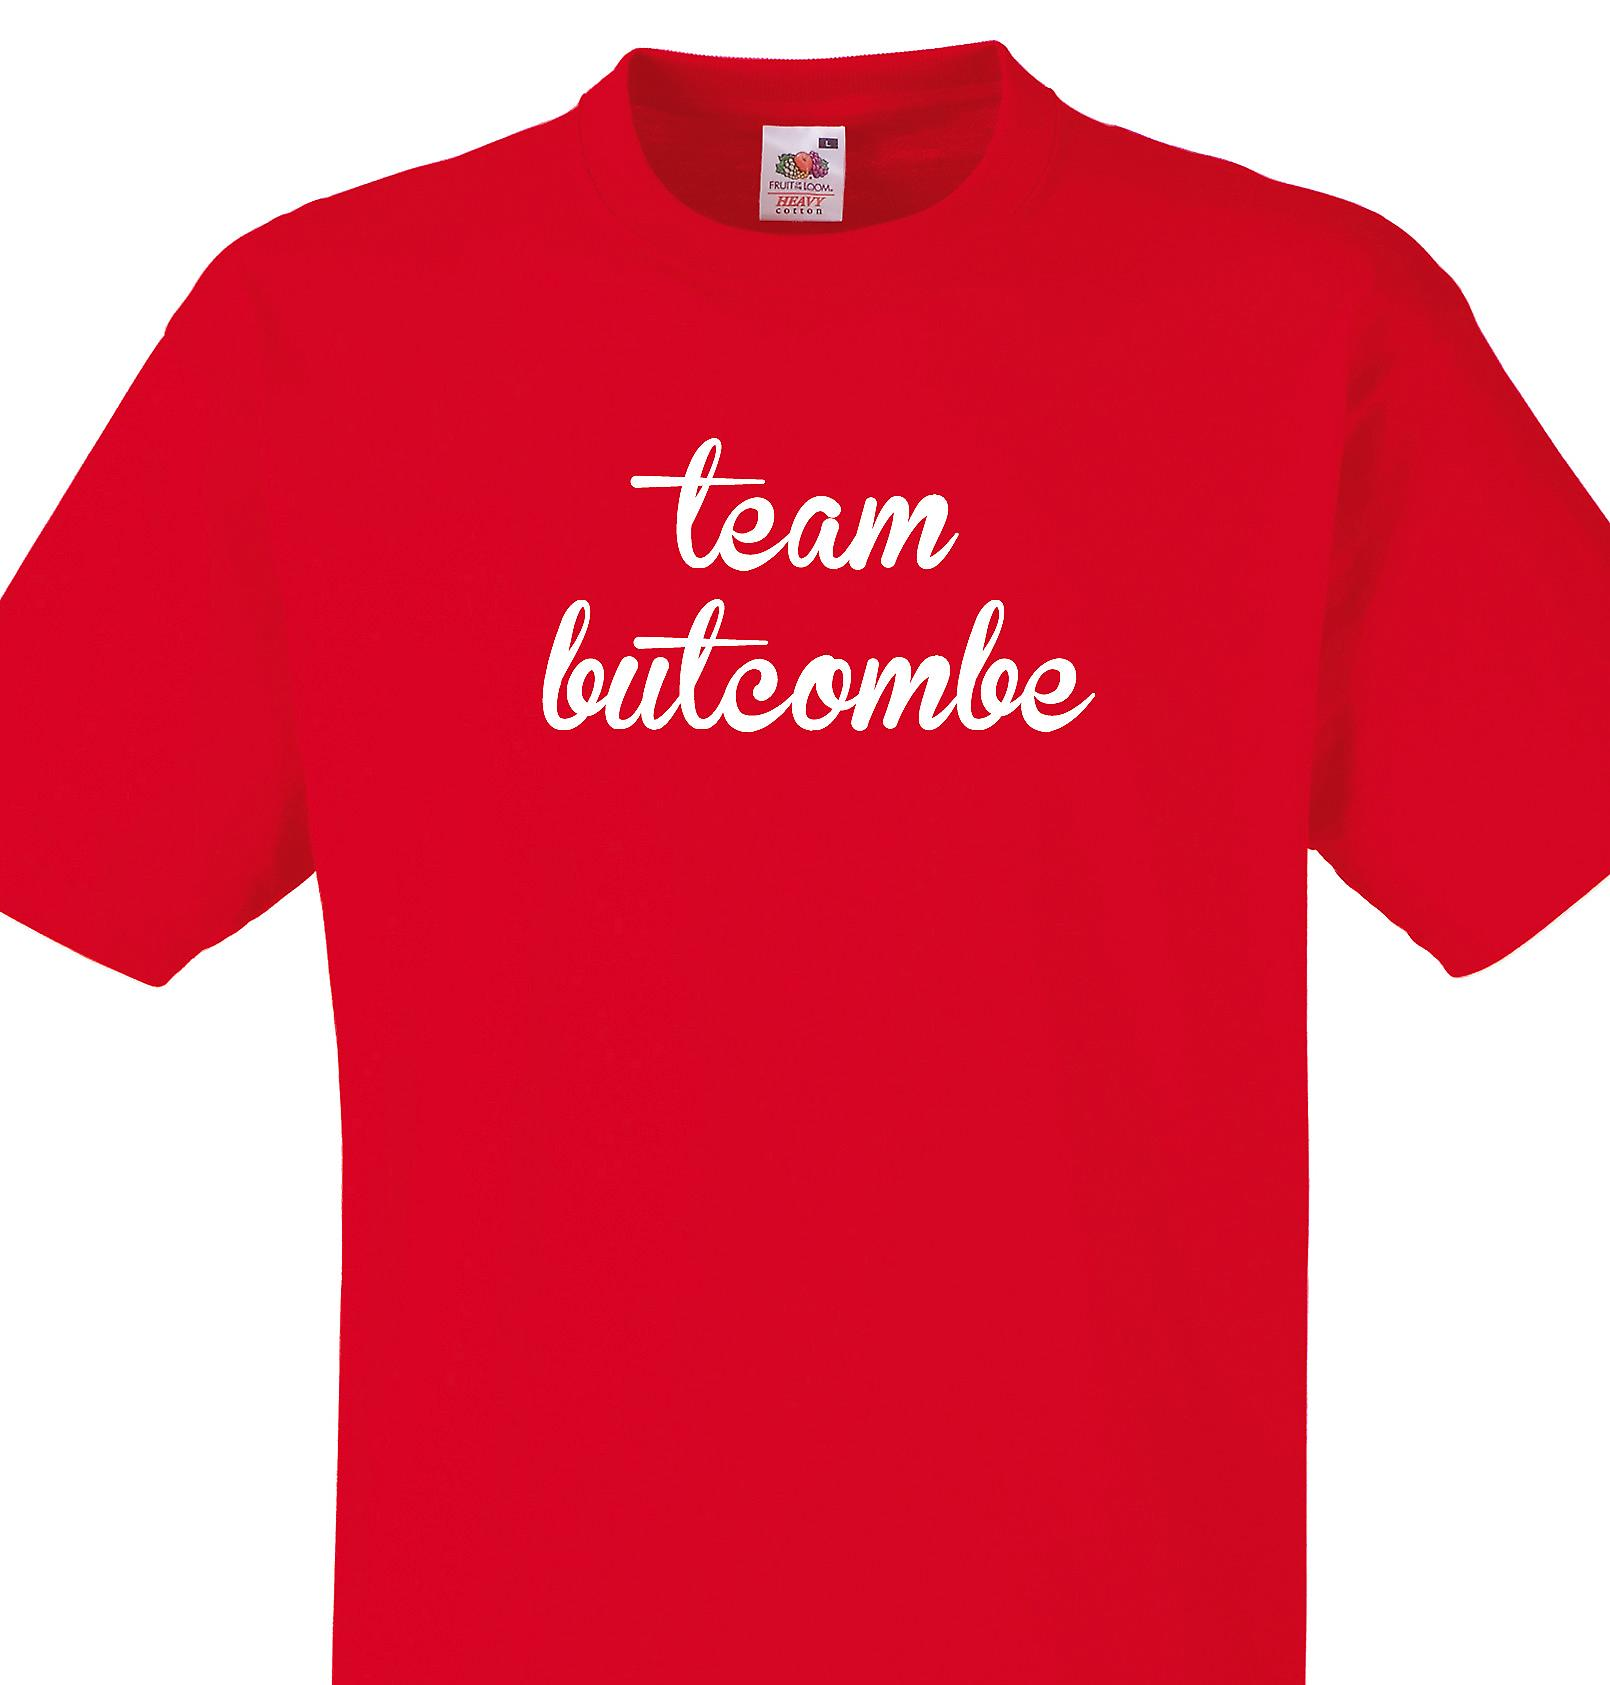 Team Butcombe Red T shirt